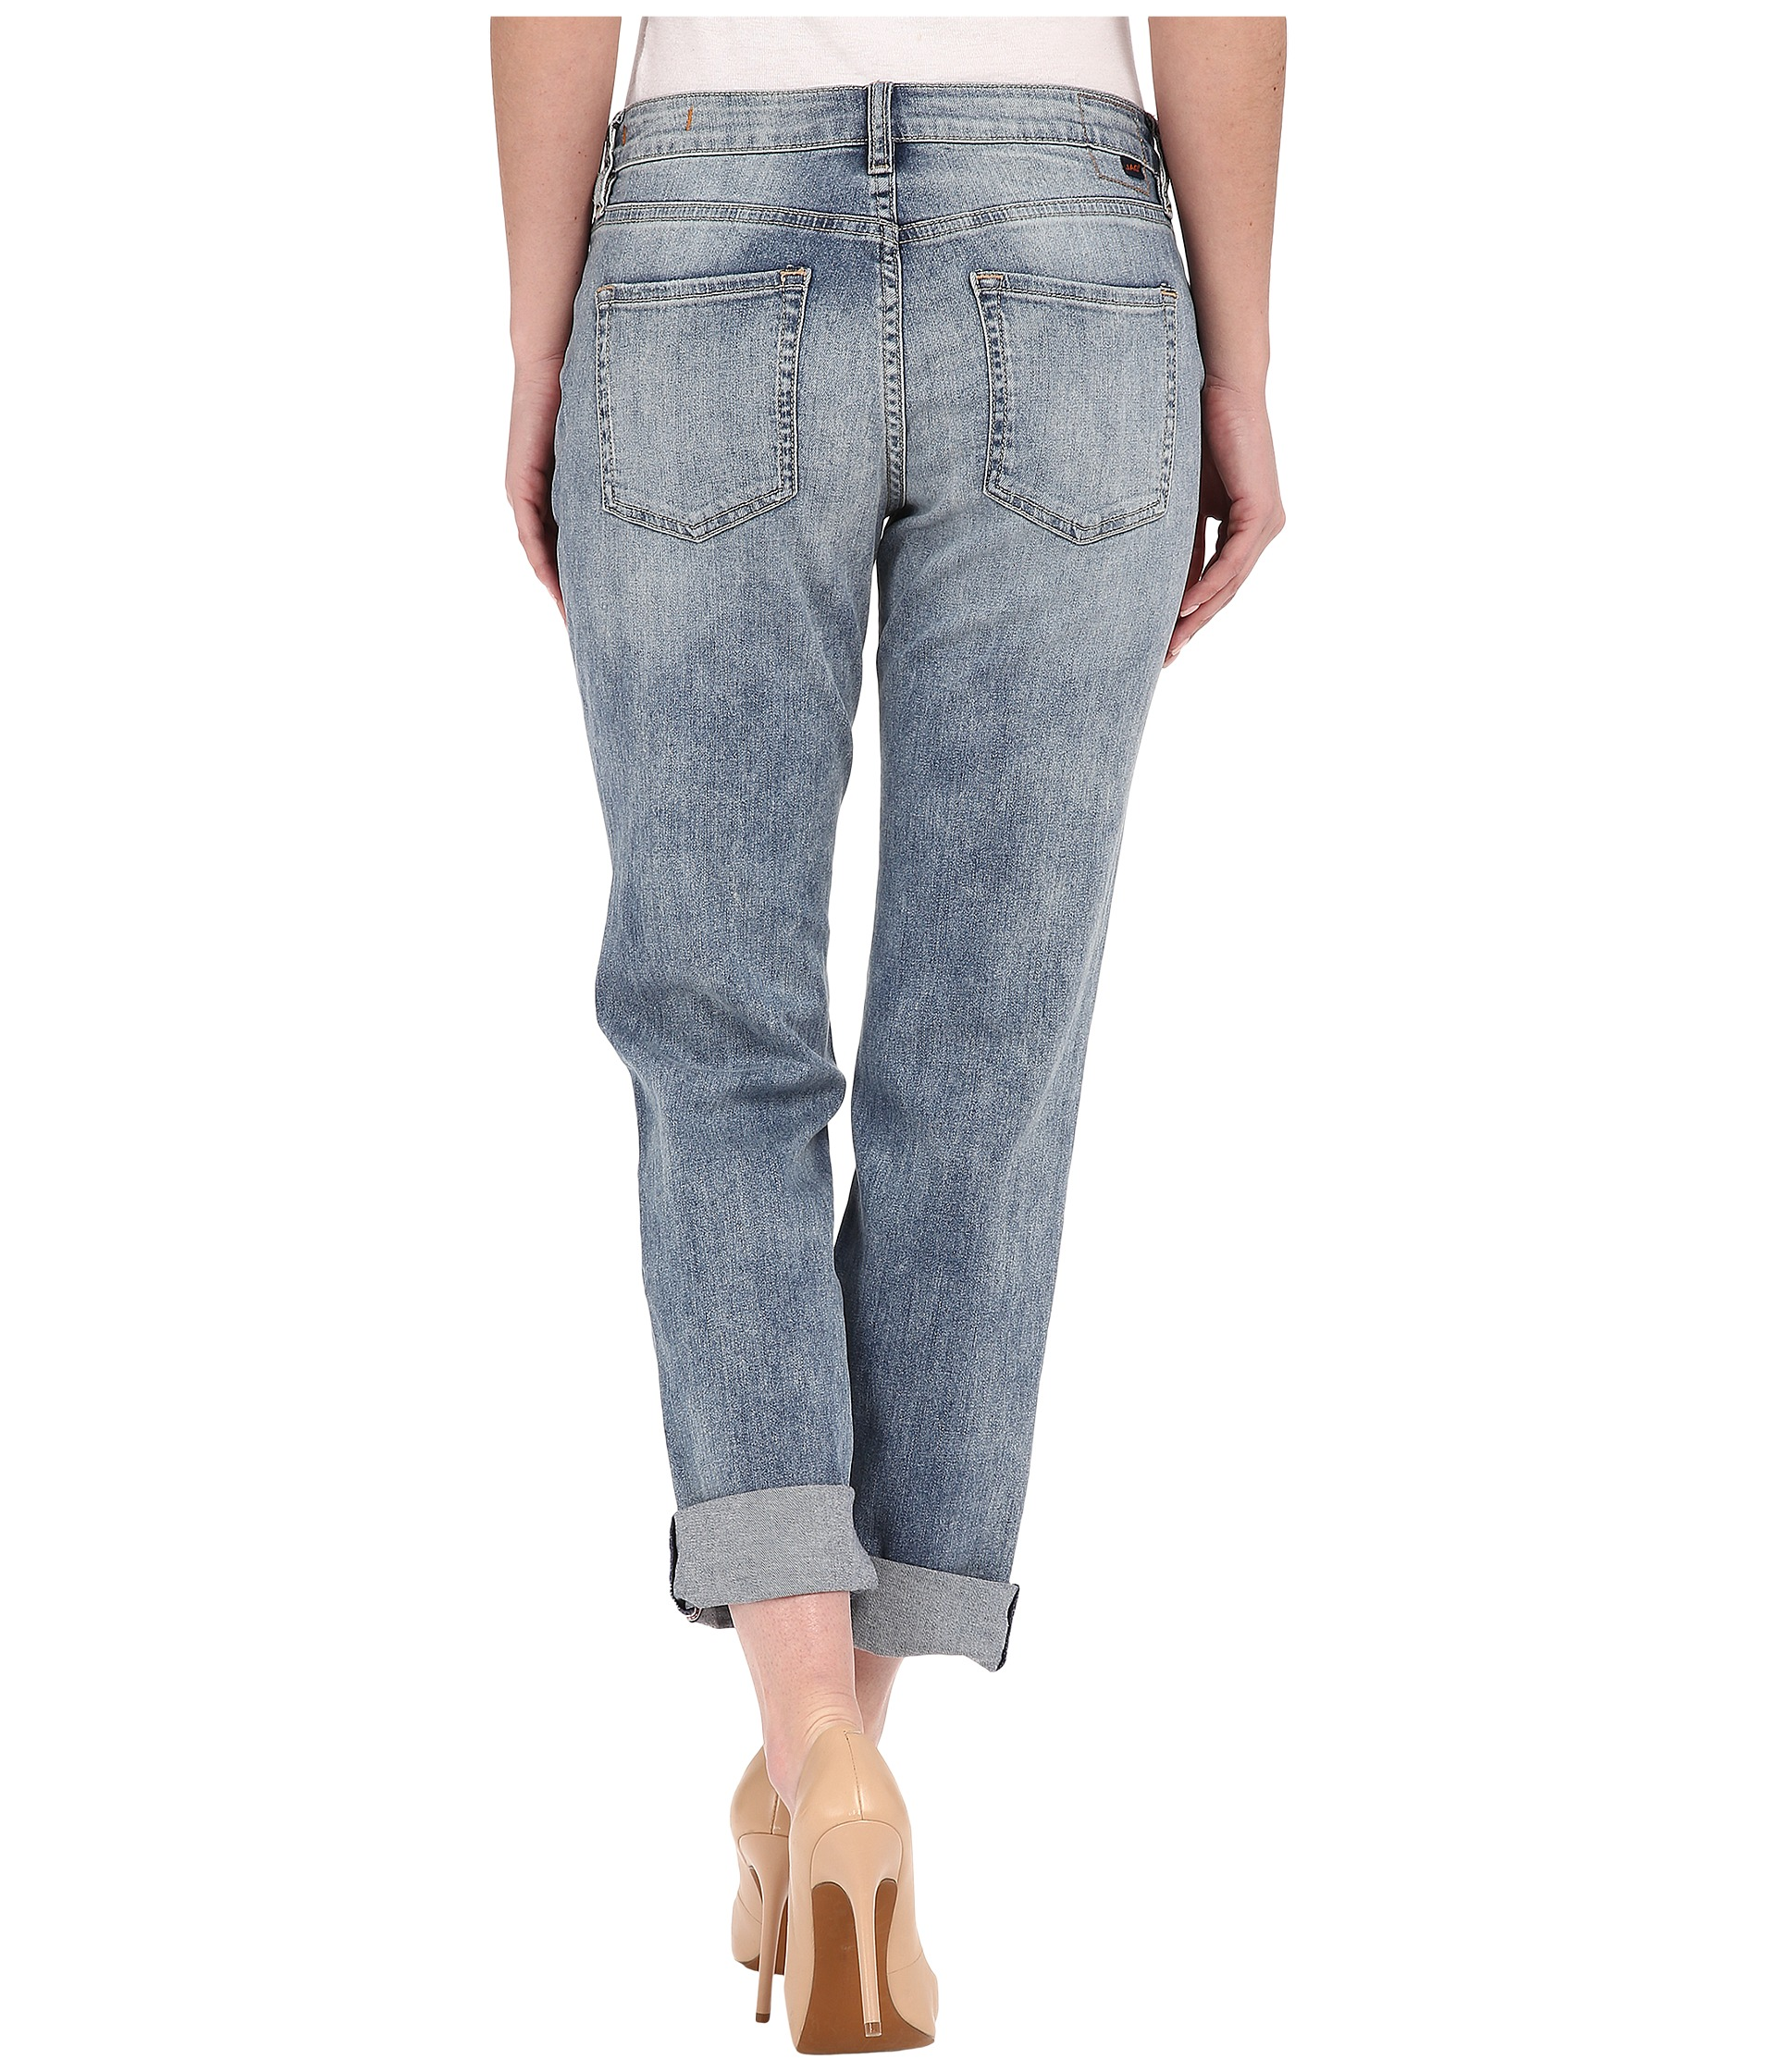 Jag Jeans Alex Boyfriend Capital Denim in Seaside Seaside - Zappos.com Free Shipping BOTH Ways